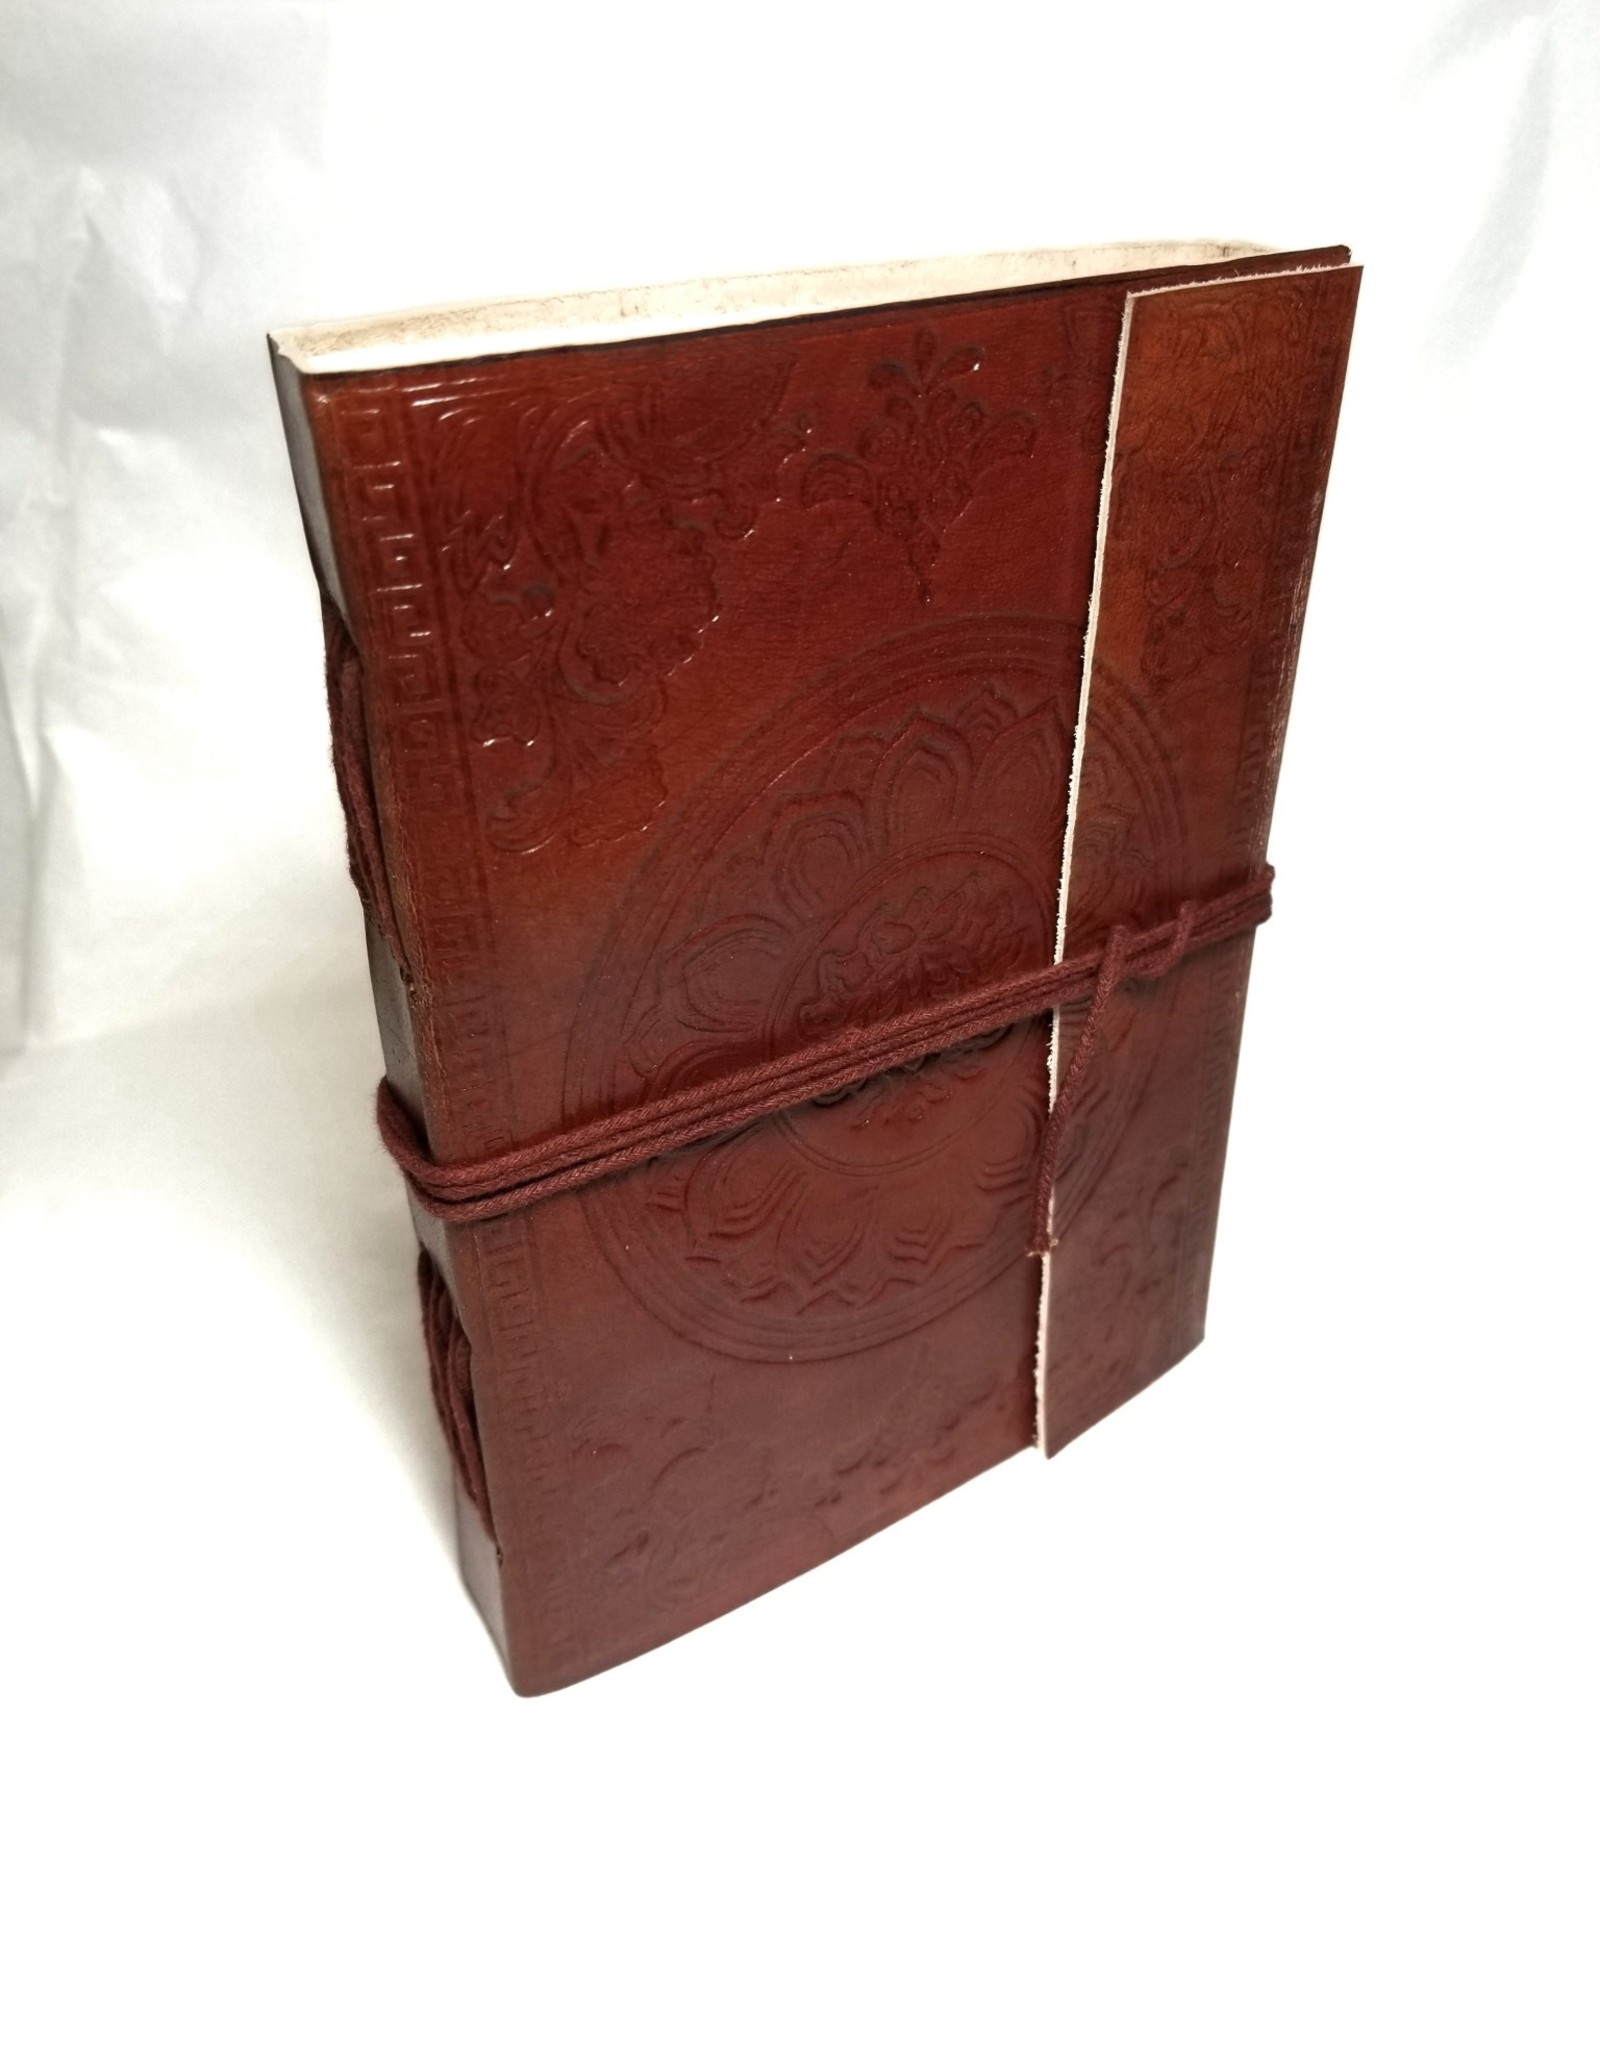 Medallion Embossed Journal with tie